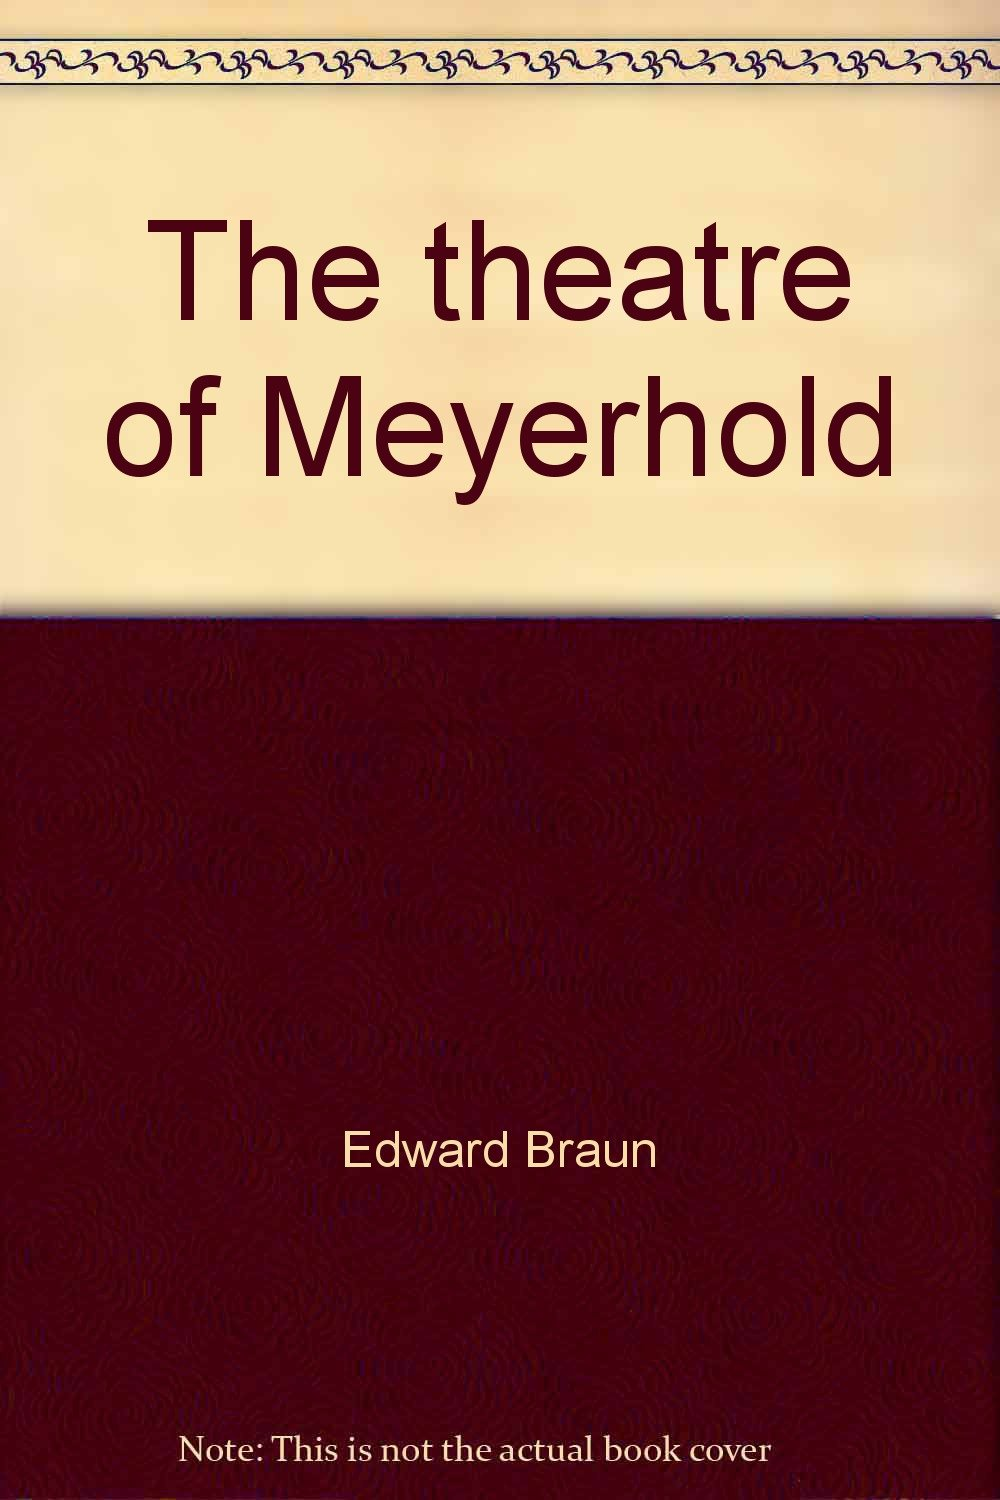 The Theatre of Meyerhold: Revolution on the Modern Stage